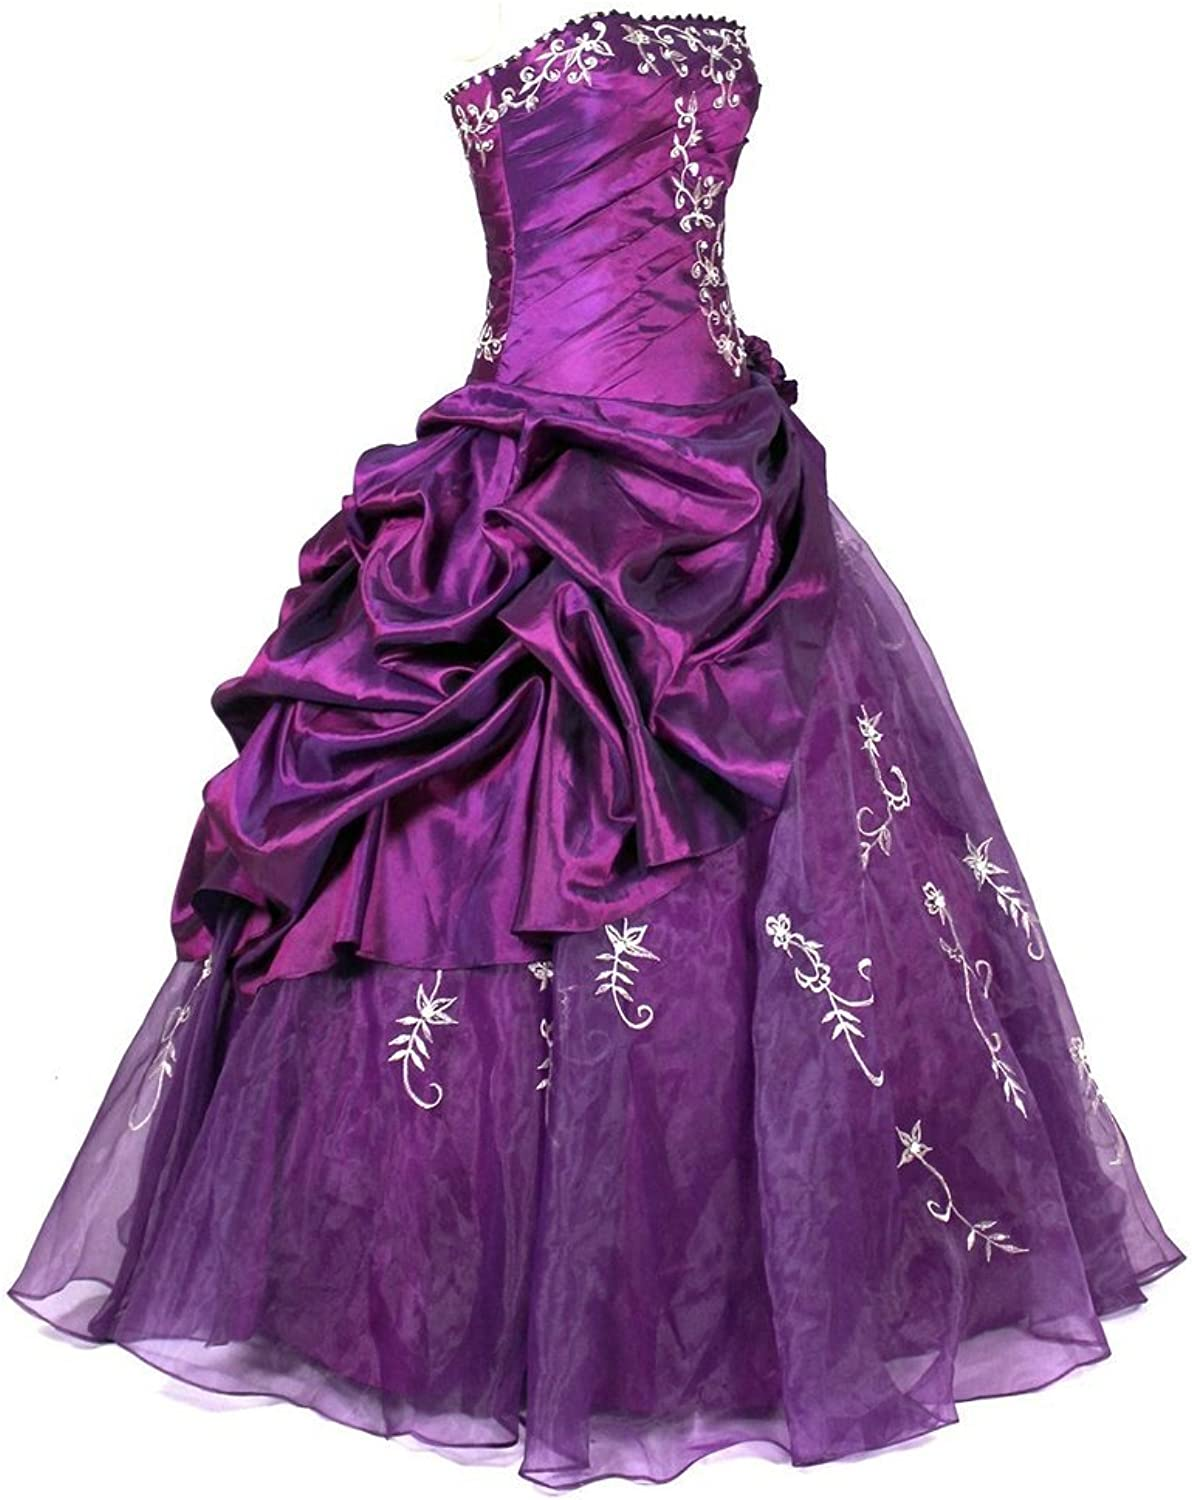 HSDJ Women's Ruffle with Embroidery Tulle Floor Length Quinceanera Dresses